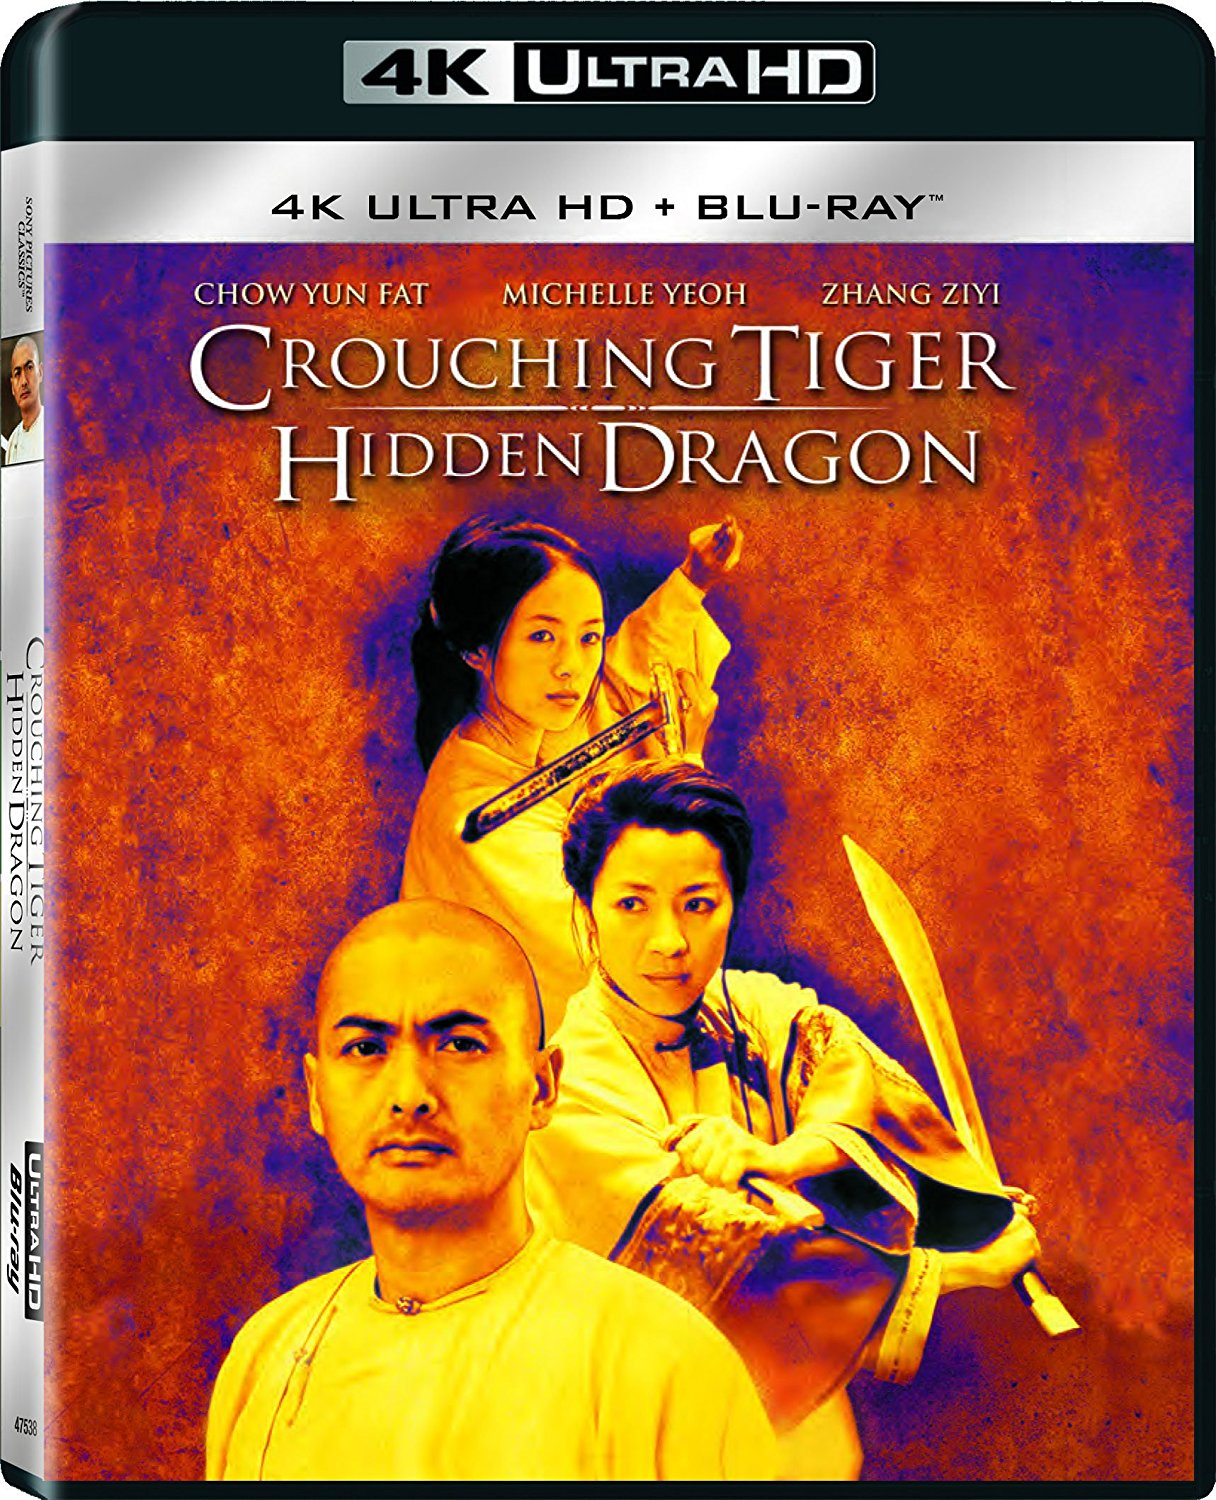 REAL MOVIE NEWS: Crouching Tiger, Hidden Dragon 4K Review